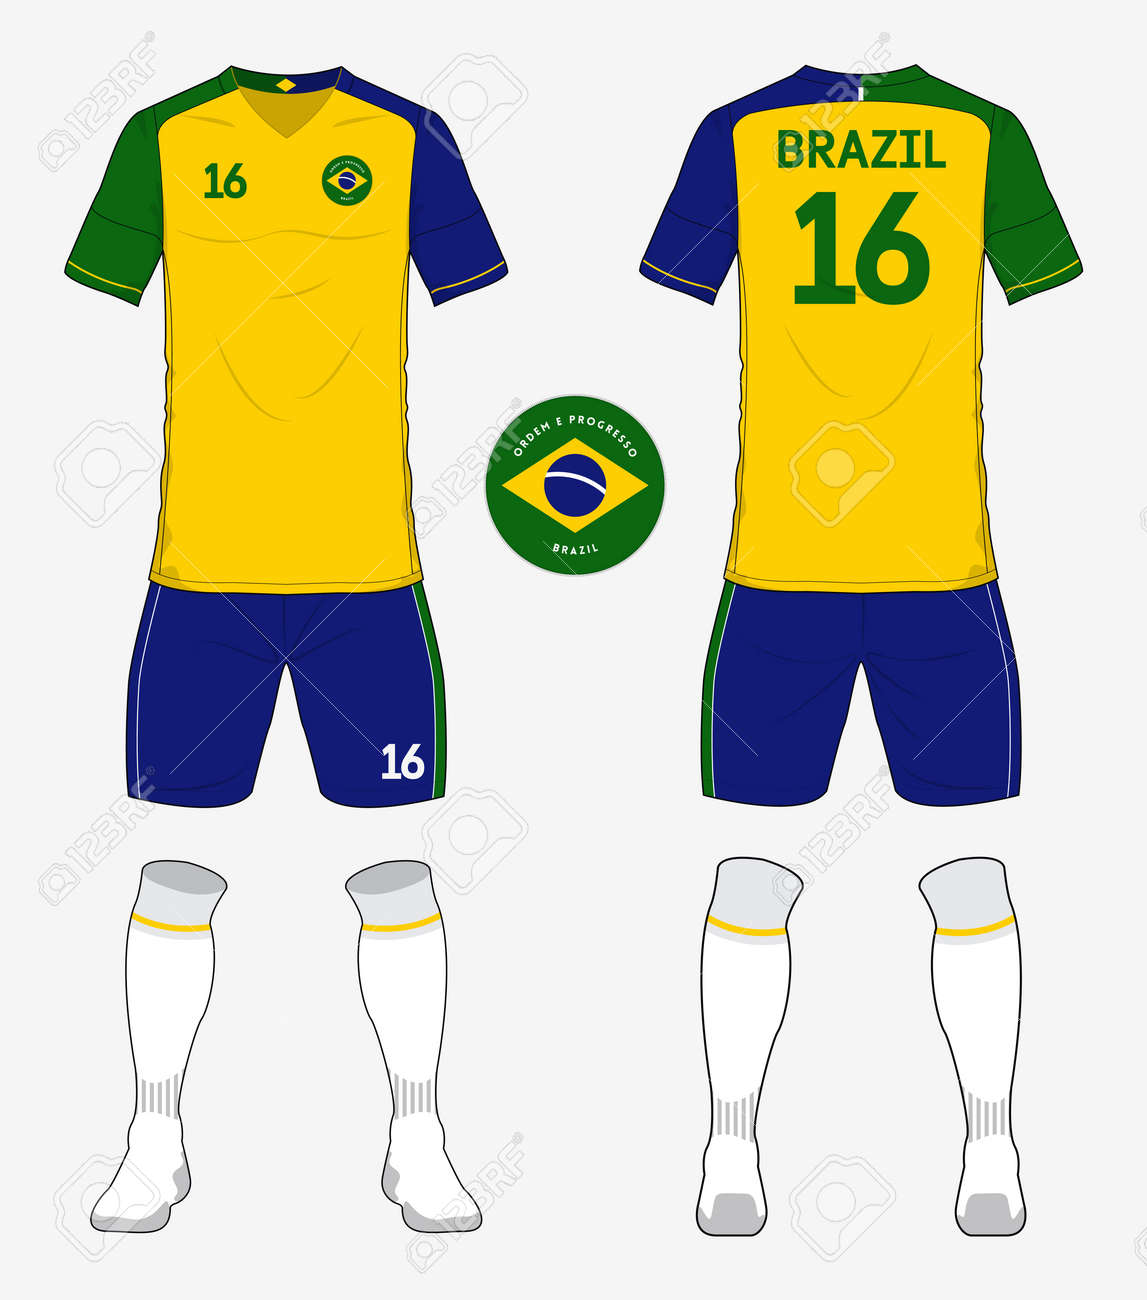 cb2b0a68f5e Set of Brazil soccer kit or football jersey template for football club.  Front and back